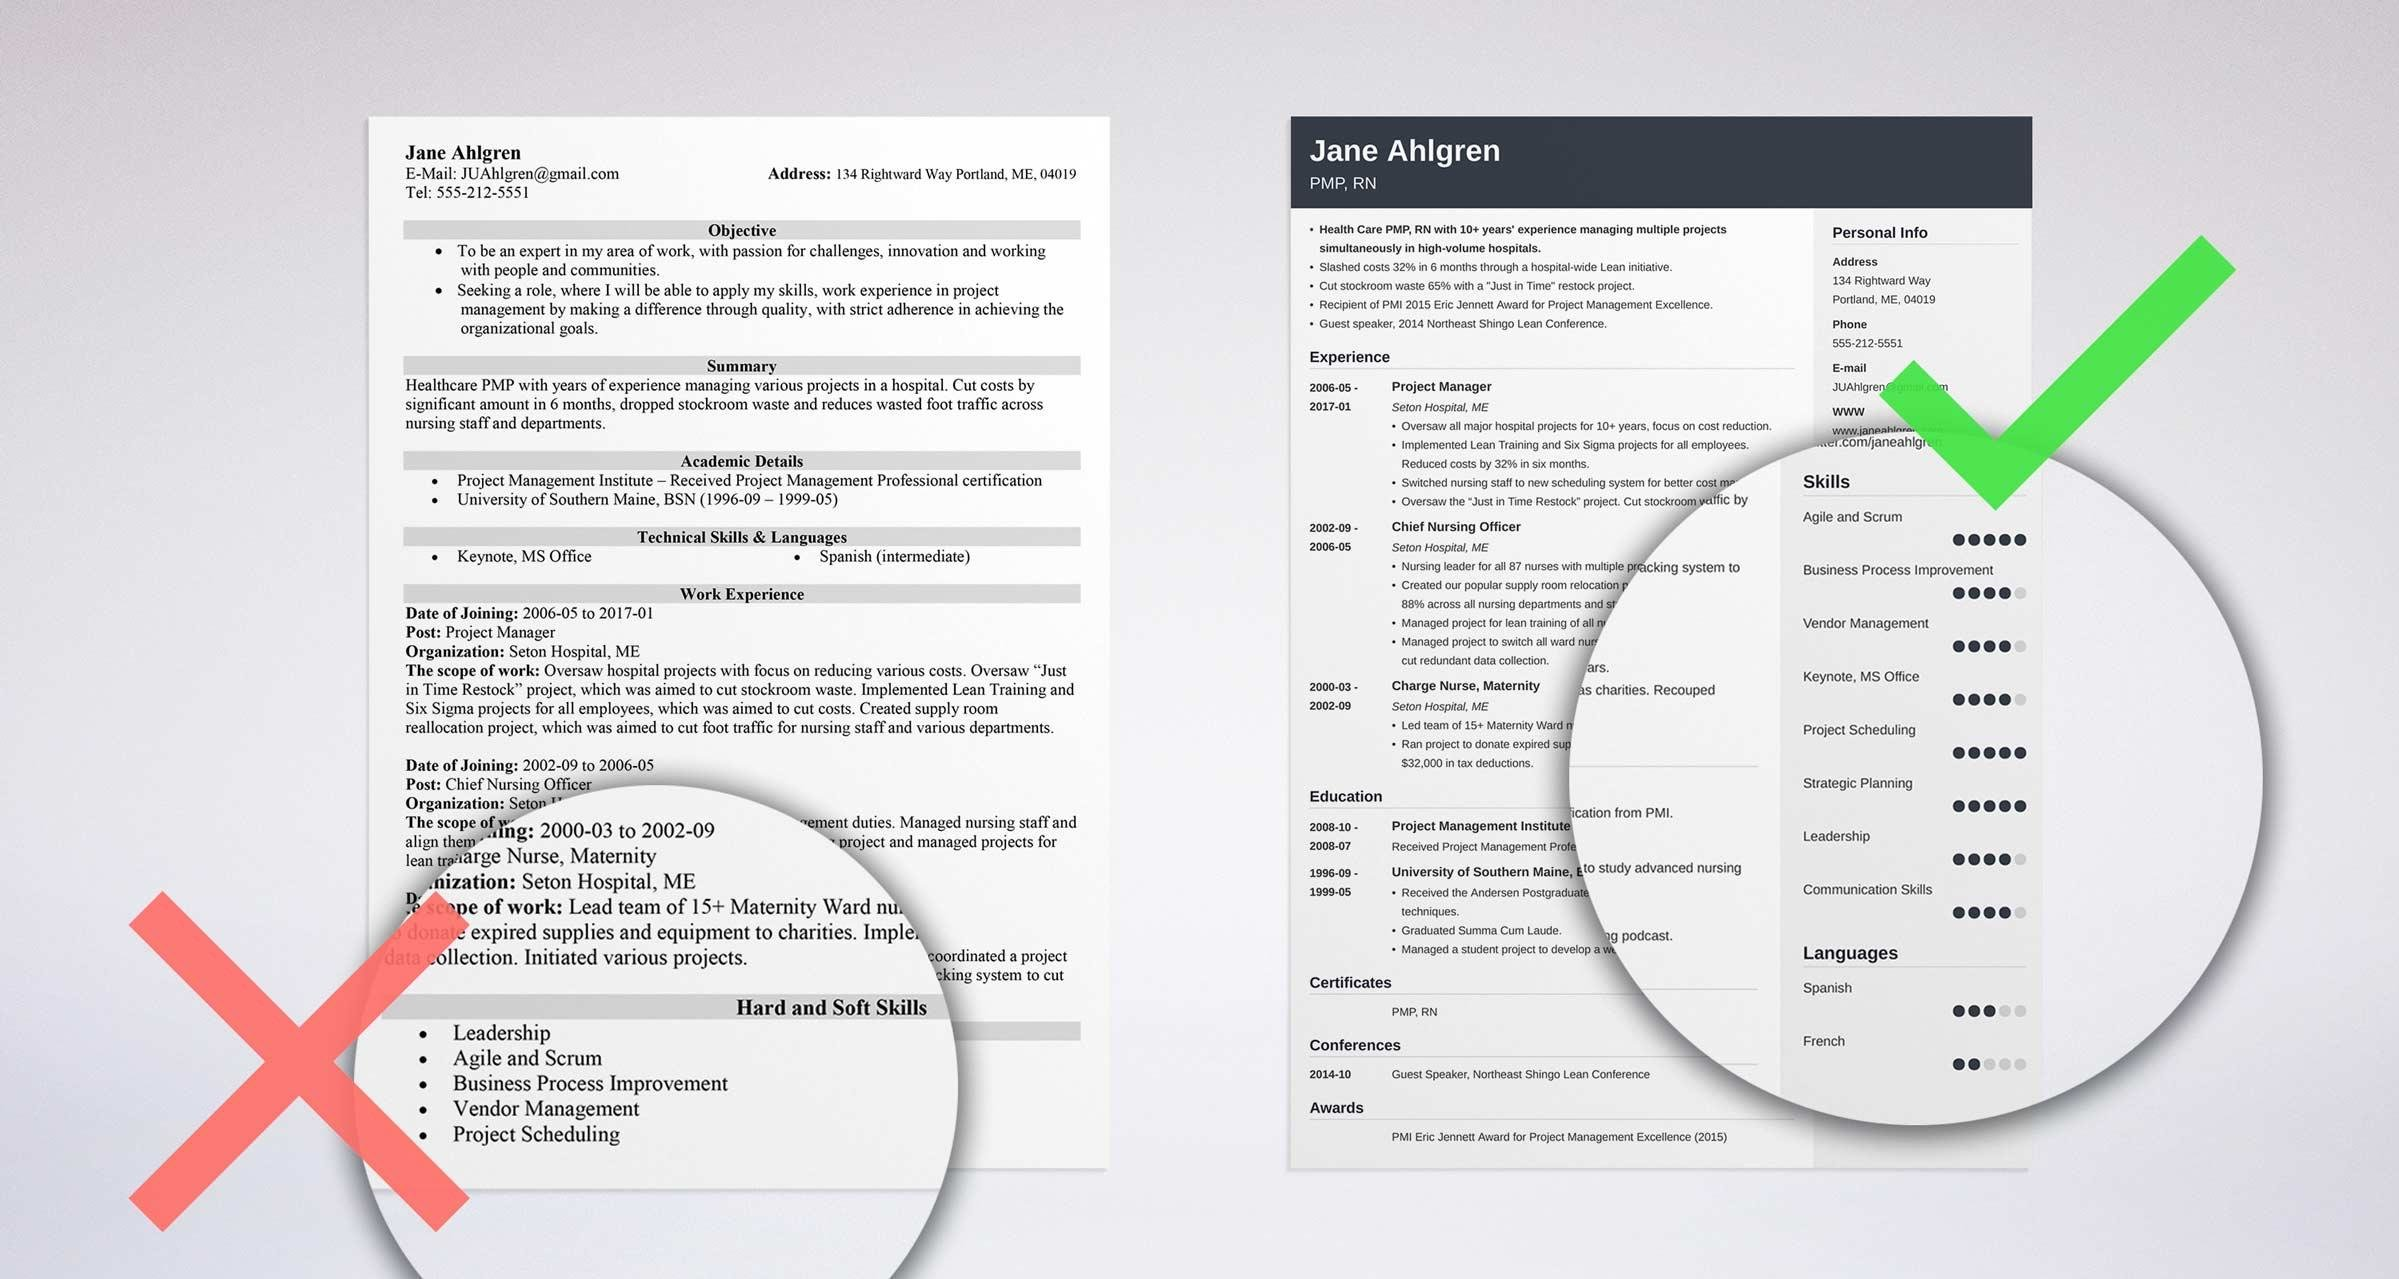 Best Computer Skills For A Resume Software Skills